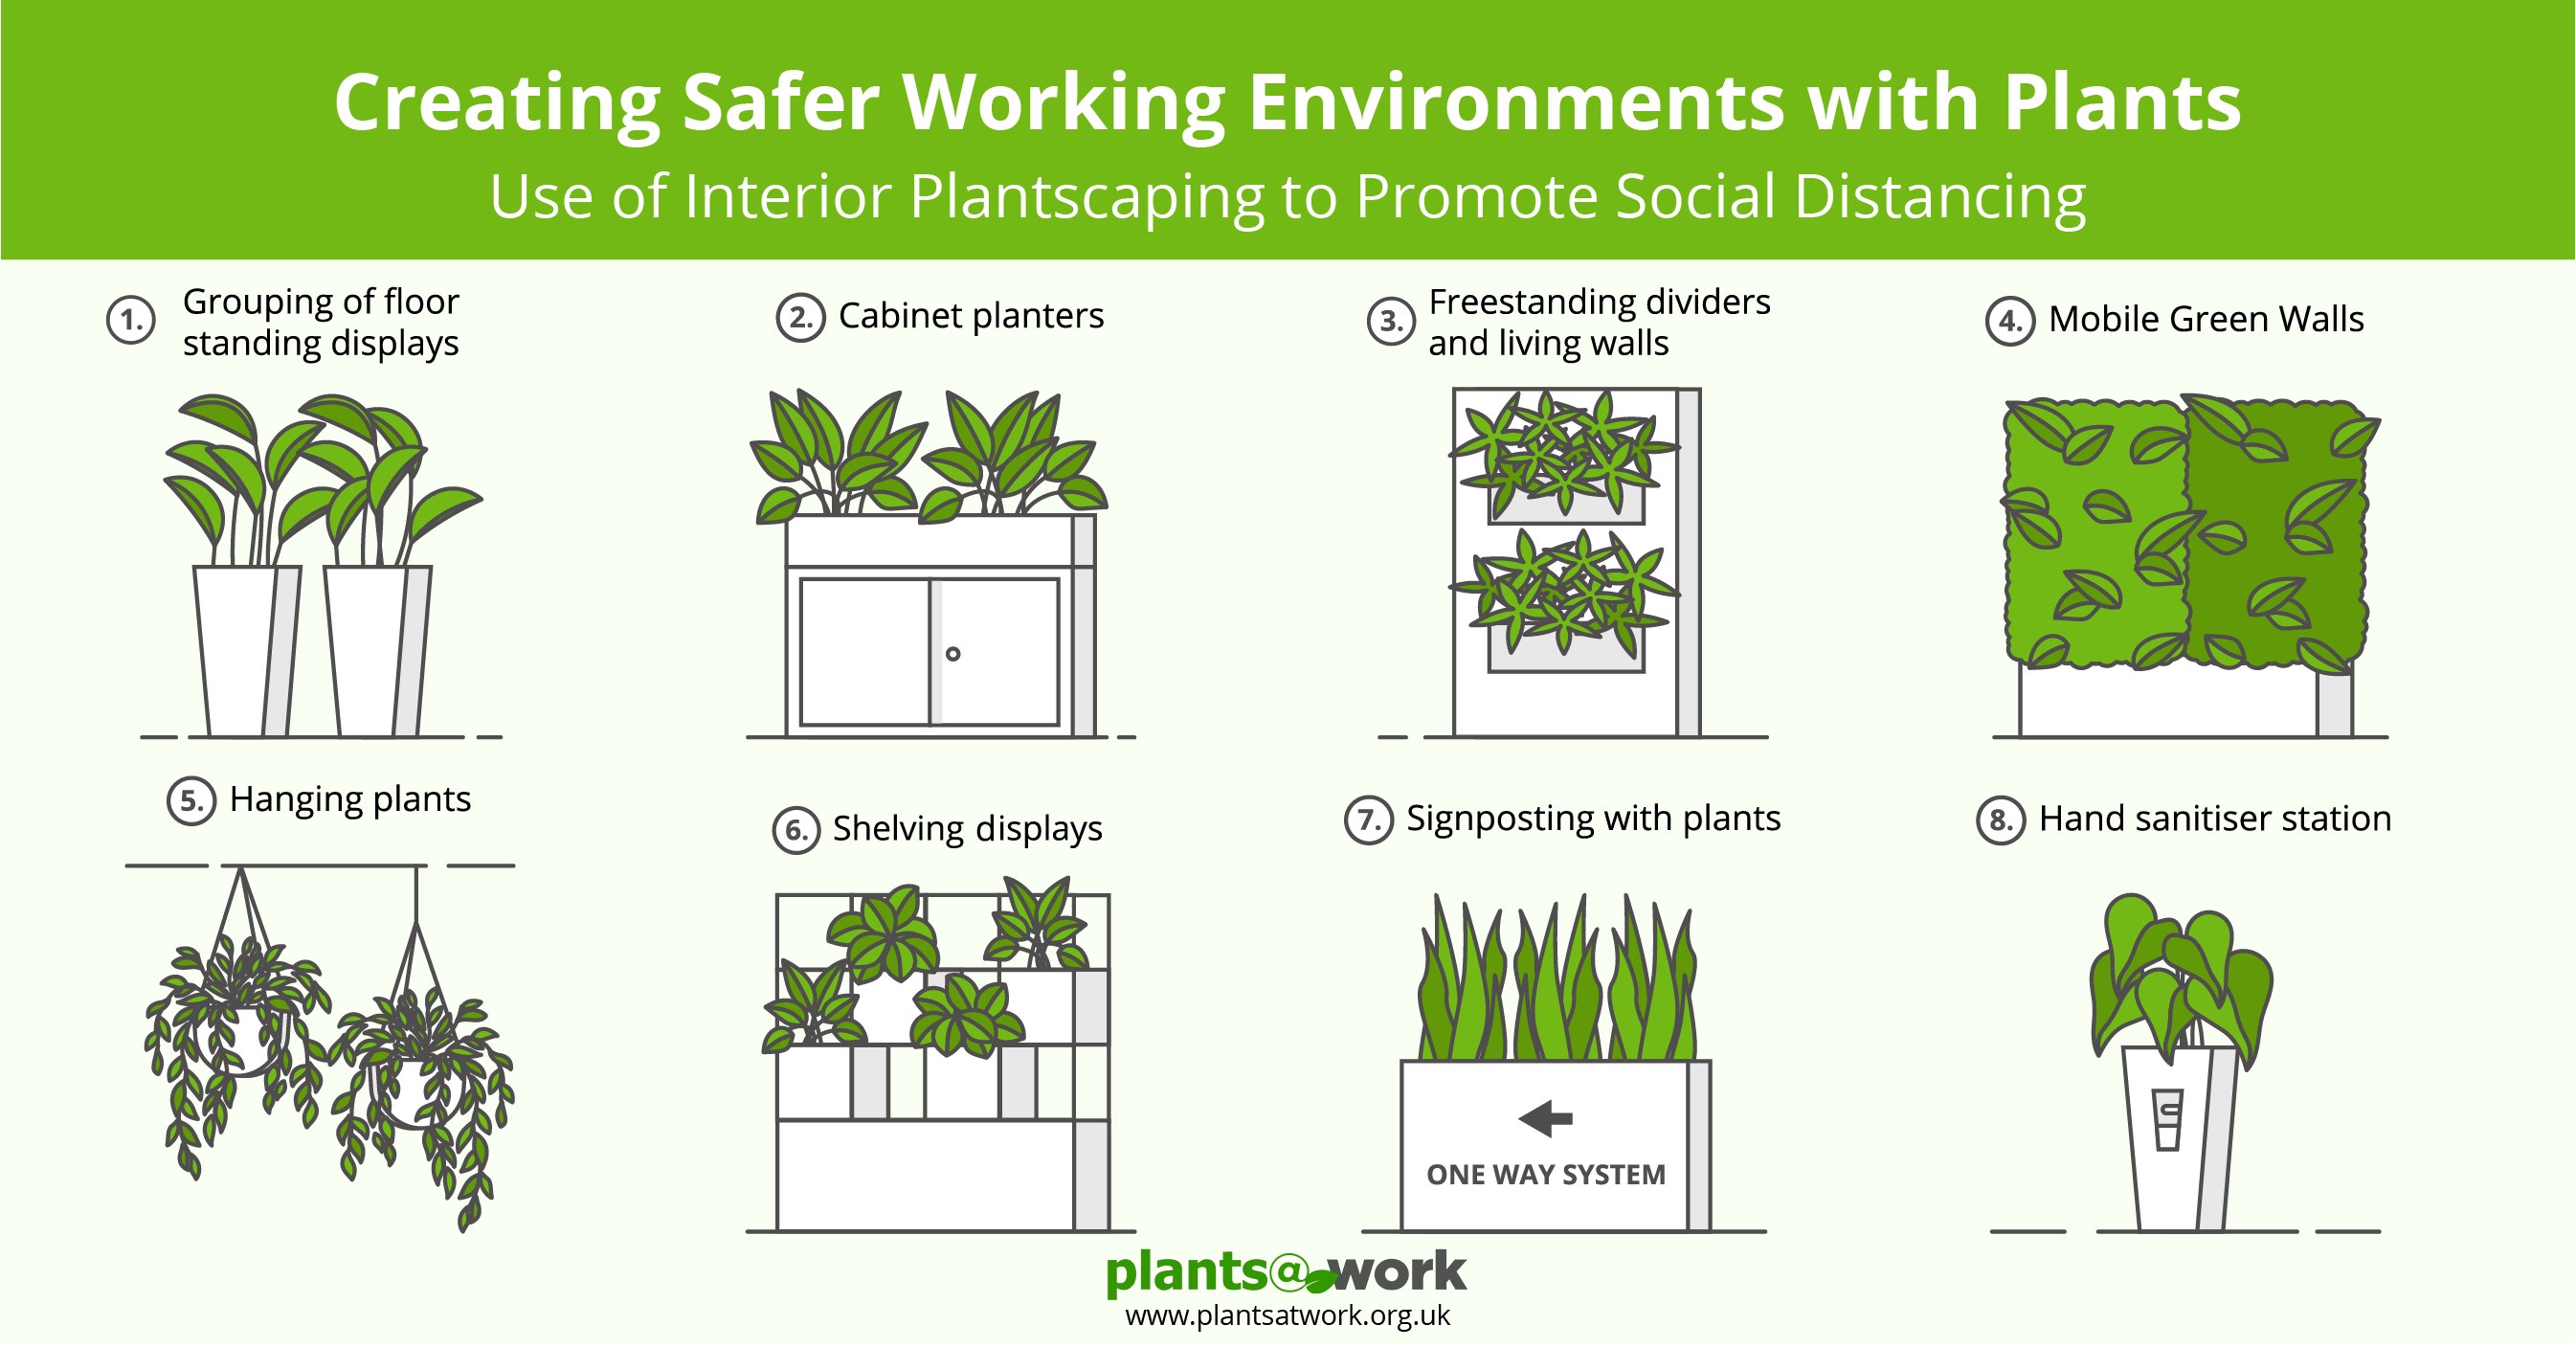 Plantscaping to Promote Social Distancing (LinkedIn)